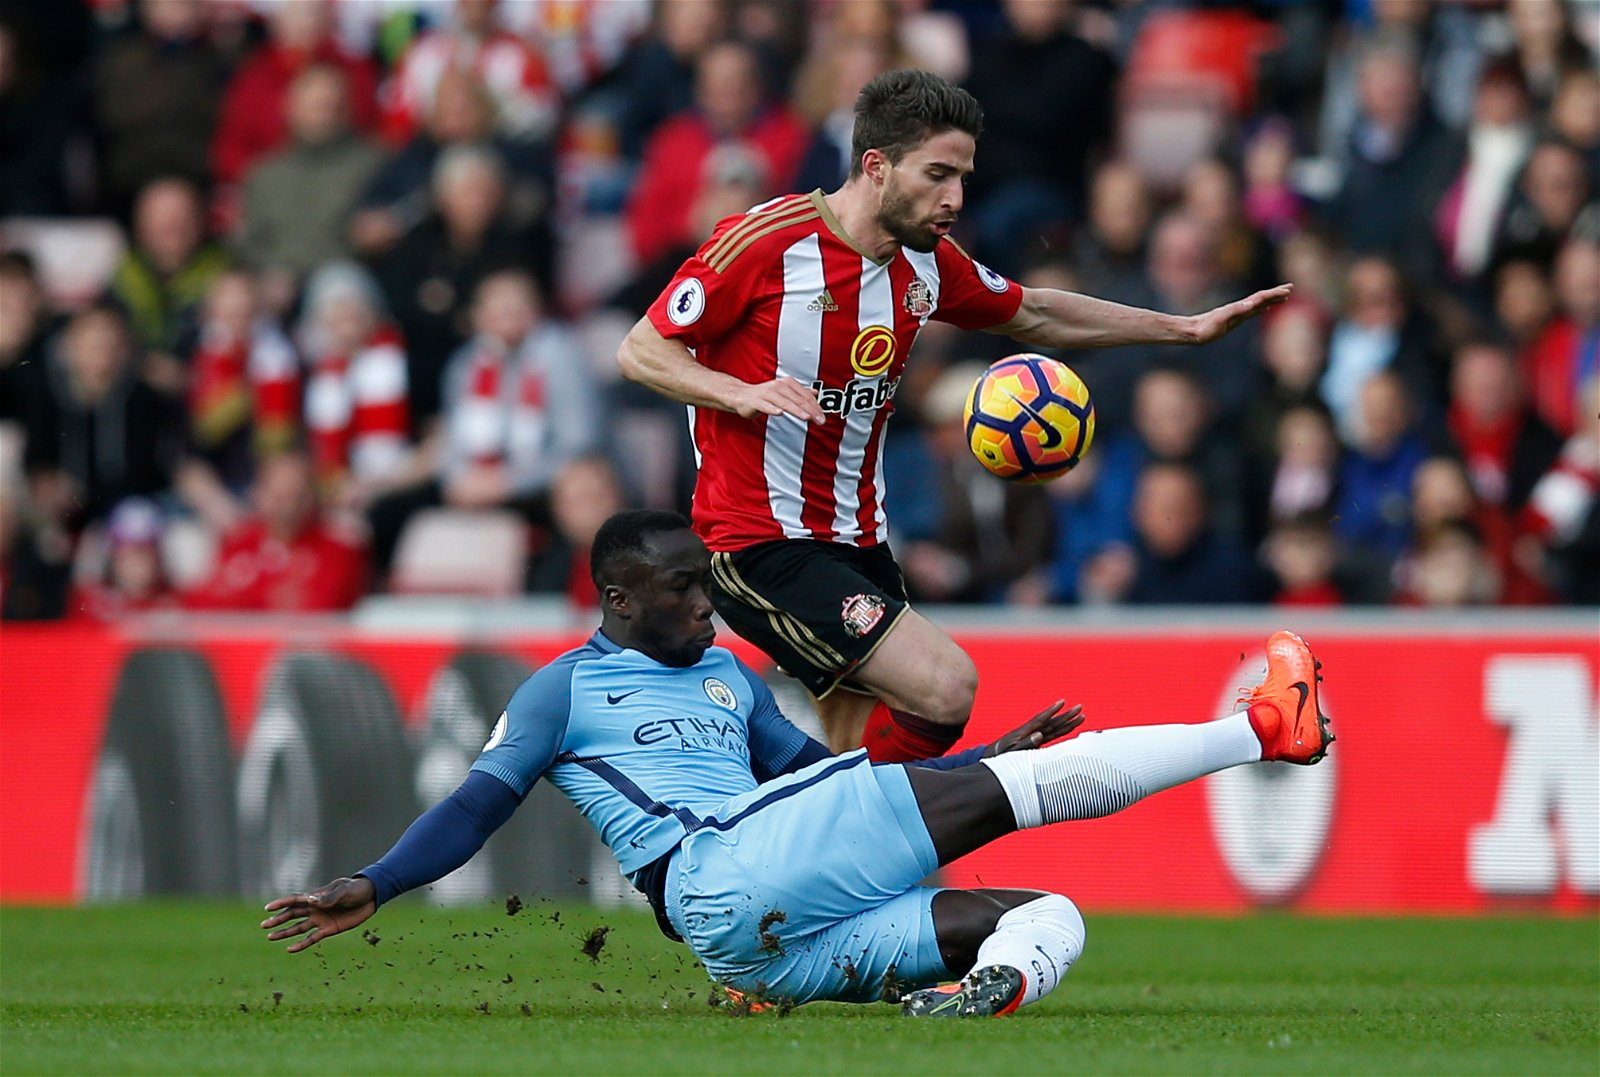 Manchester City's Bacary Sagna in action with Sunderland's Fabio Borini